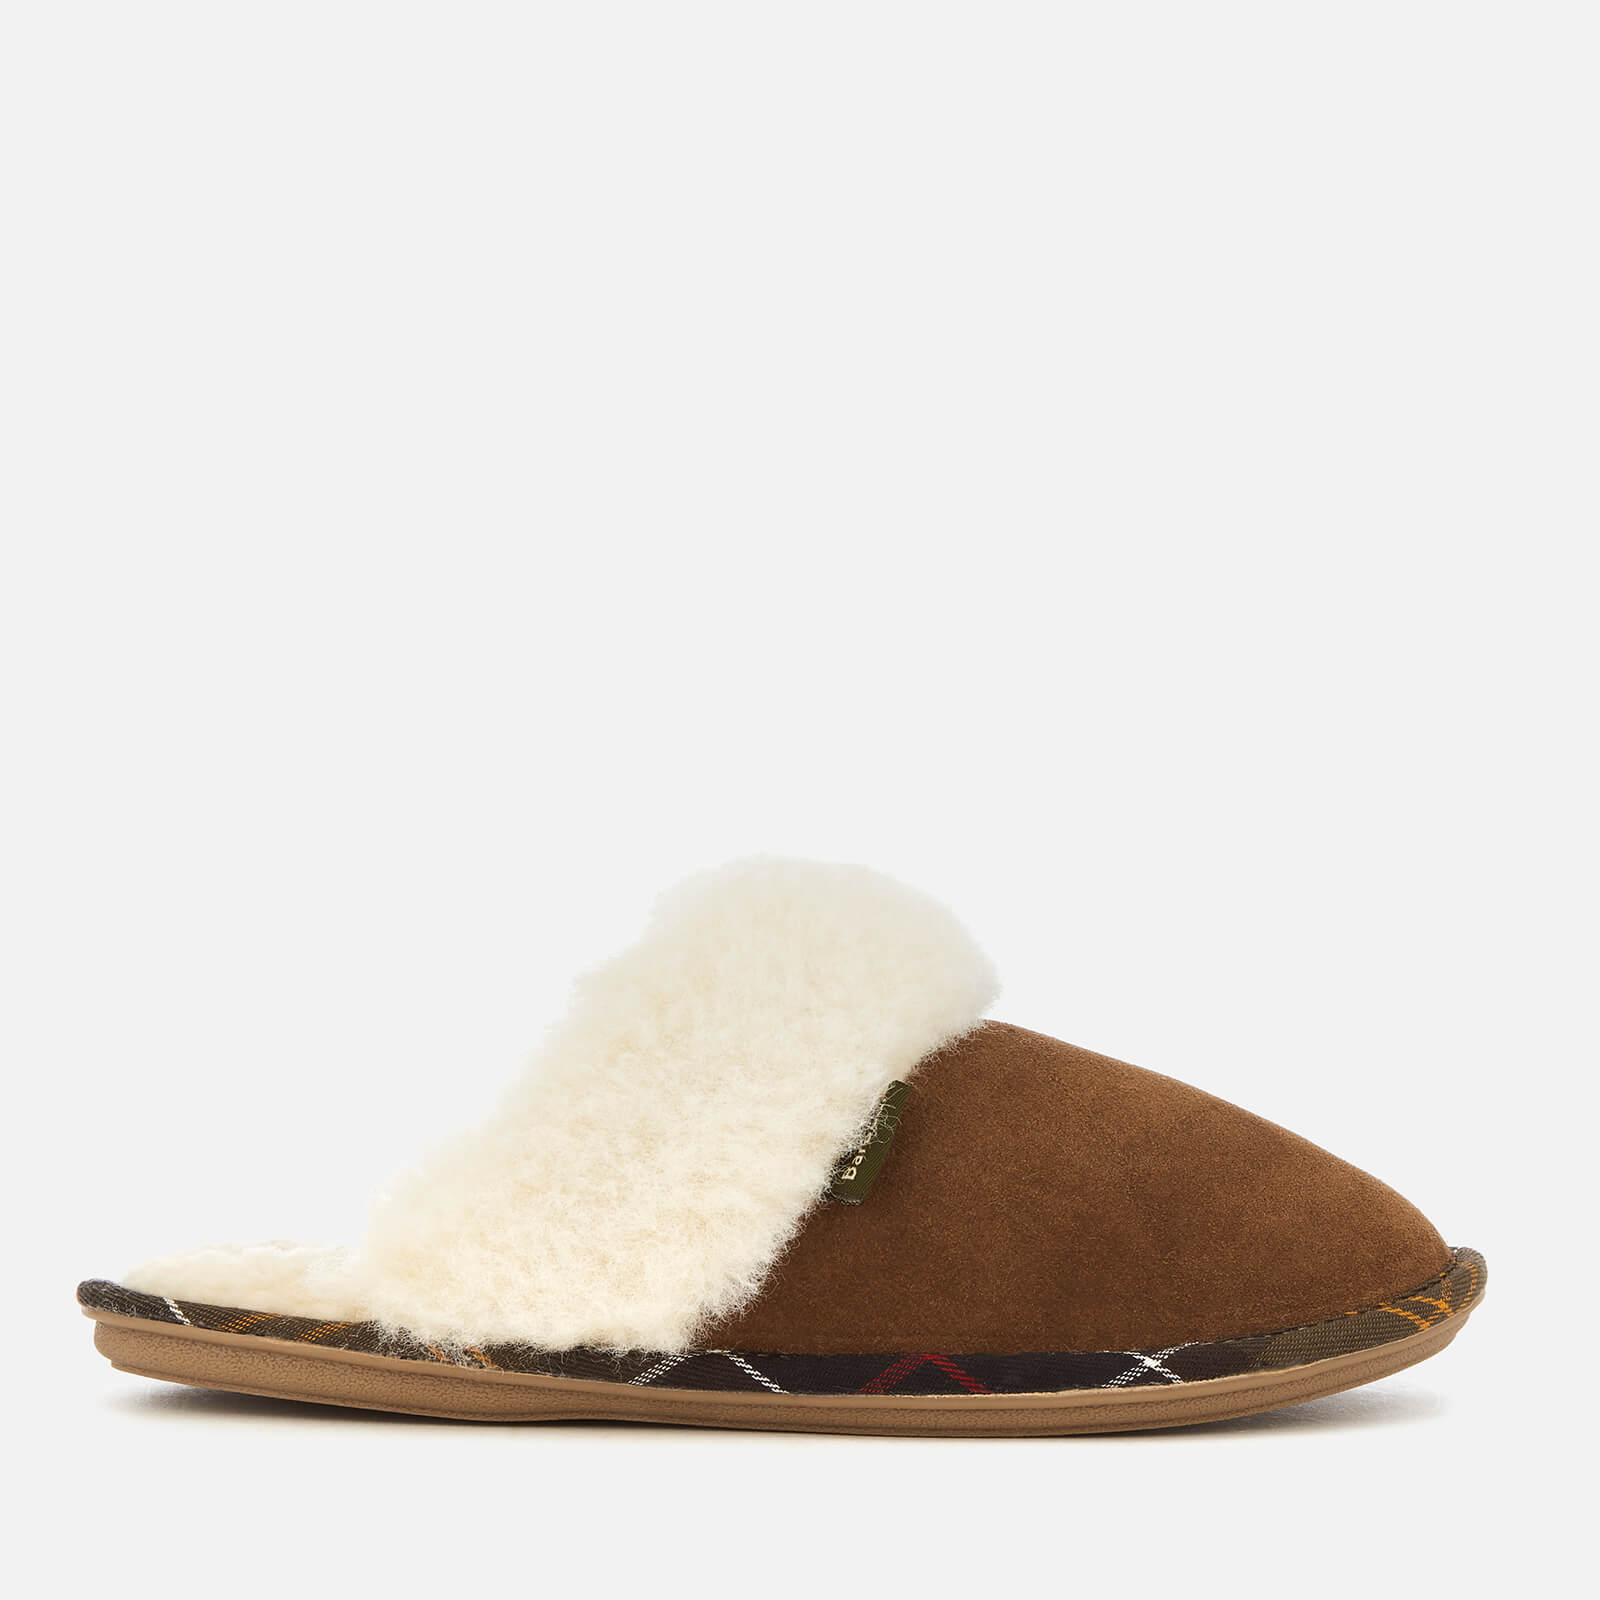 Barbour Womens Lydia Suede Mule Slippers Camel Uk 3 Tan